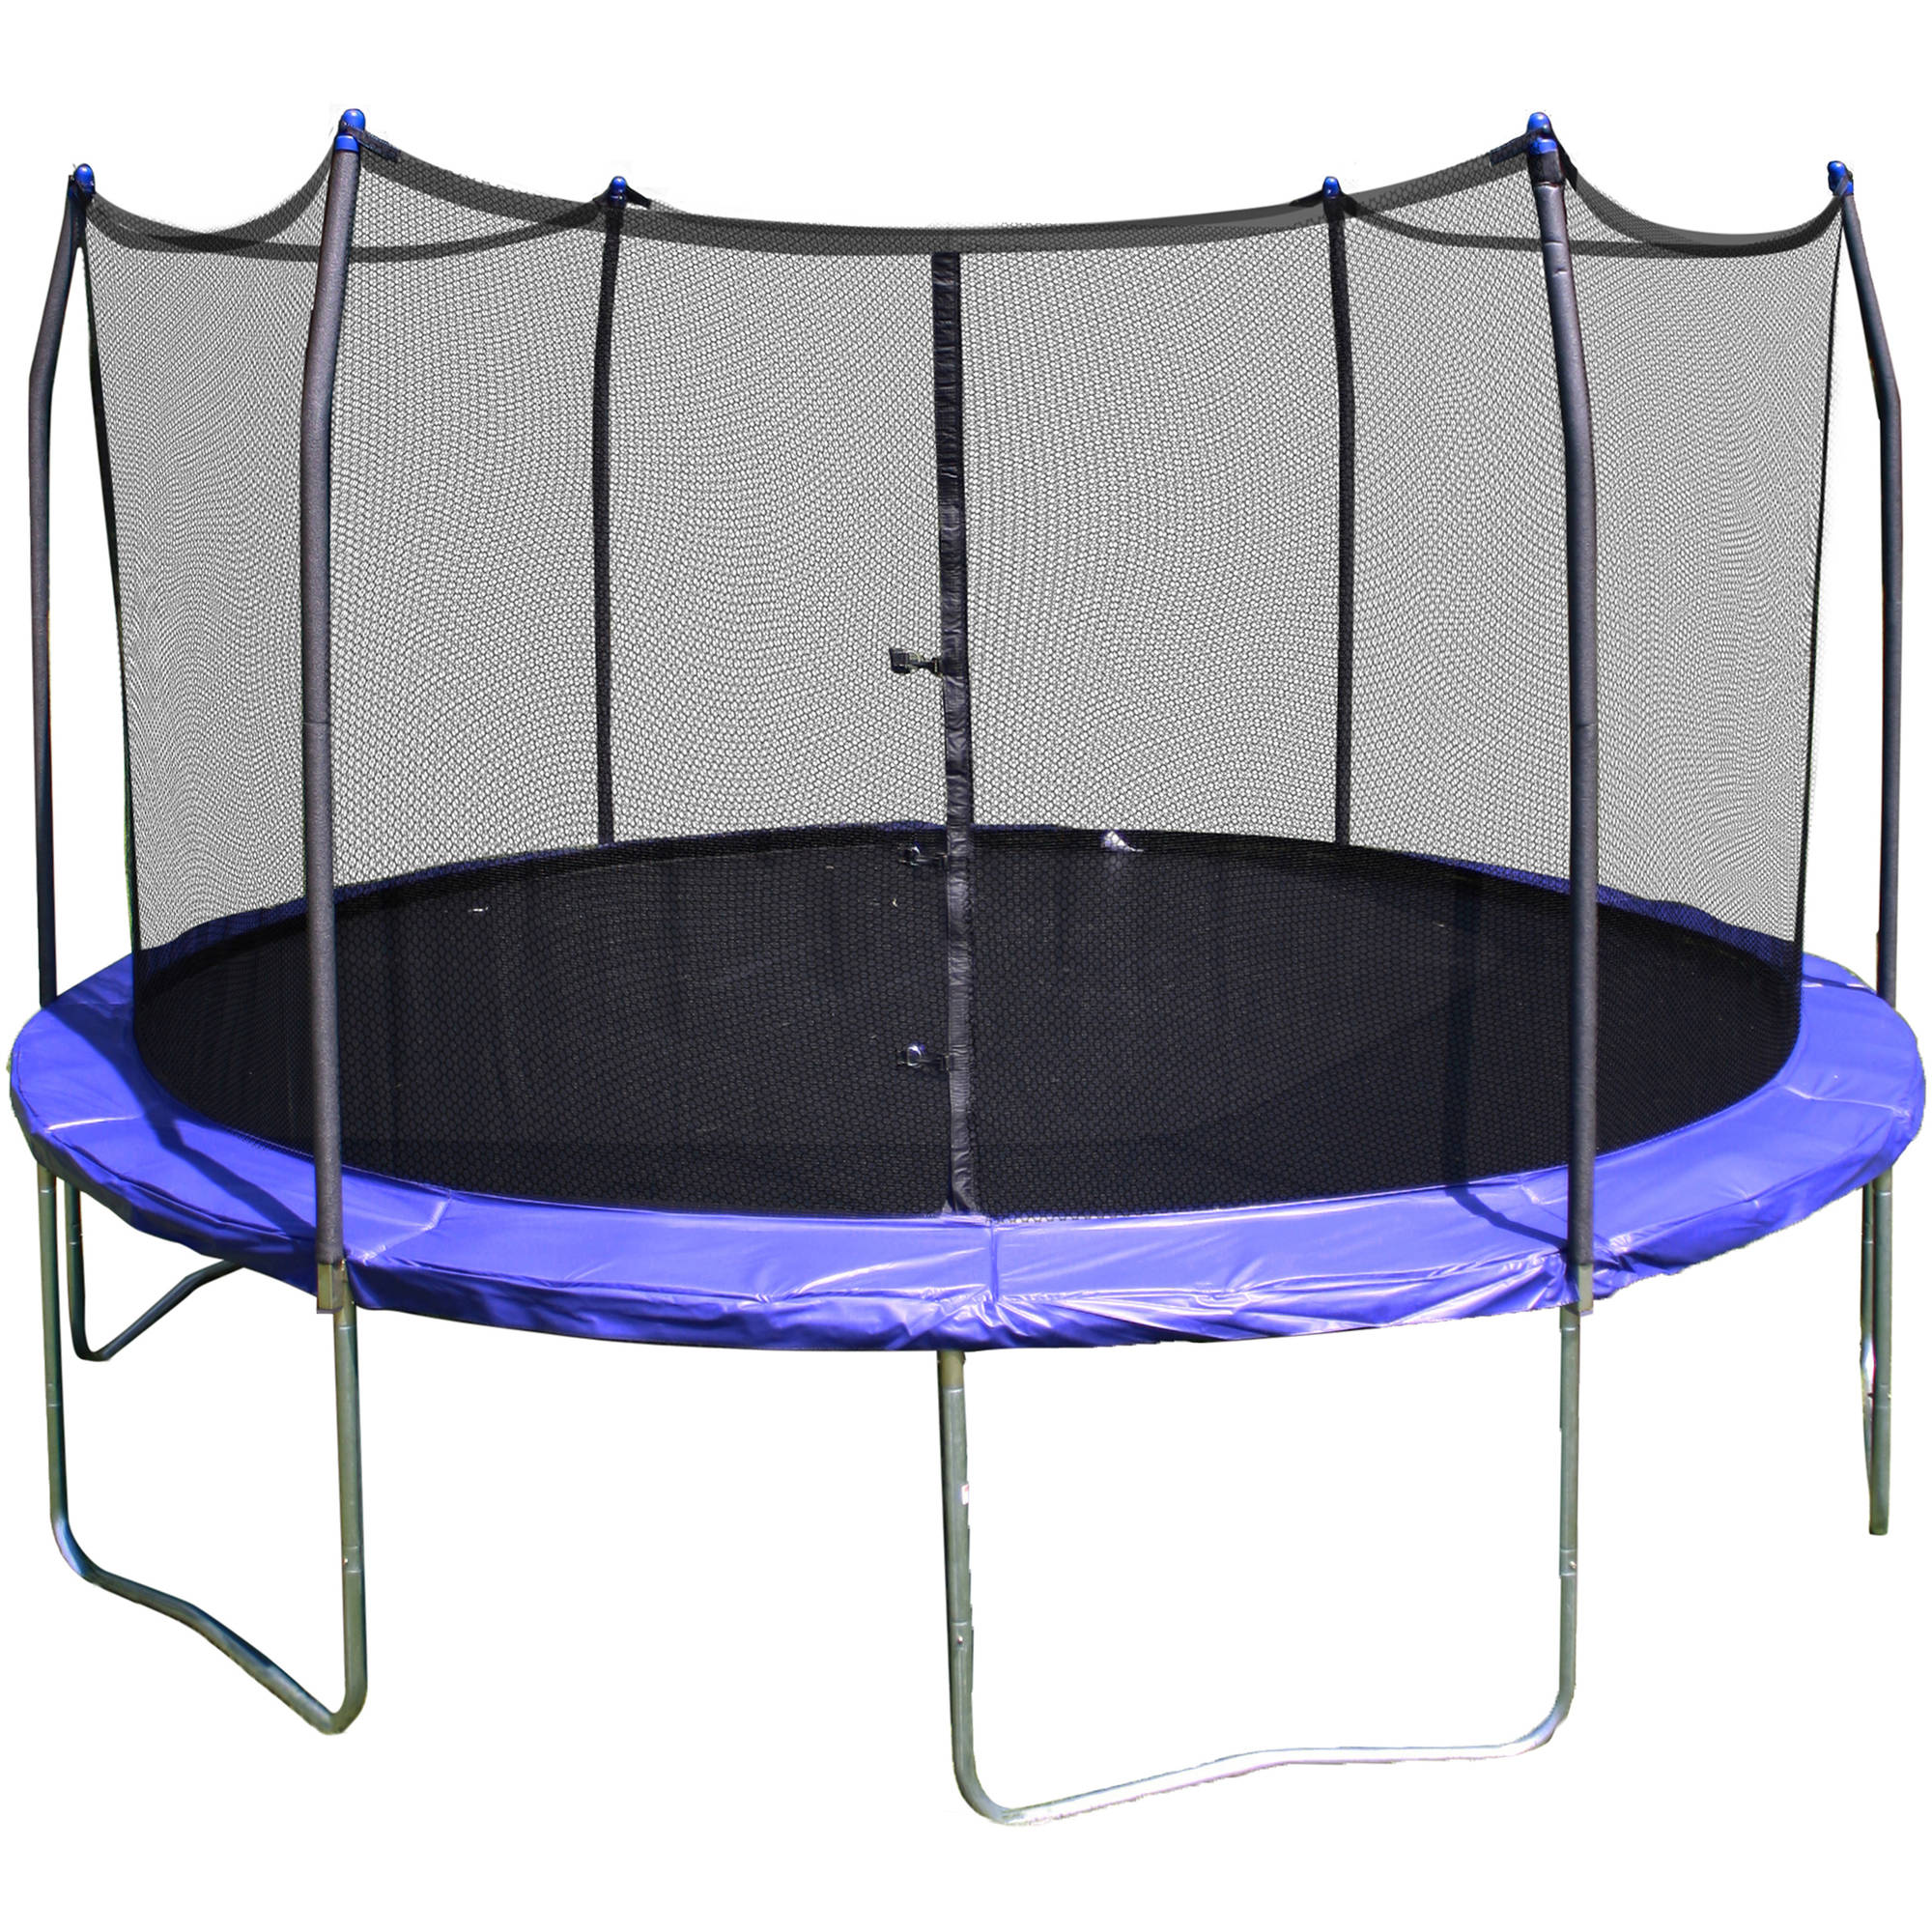 Round Trampoline 12 Safety Enclosure Net Bounce Jump Spring Pad Outdoor New